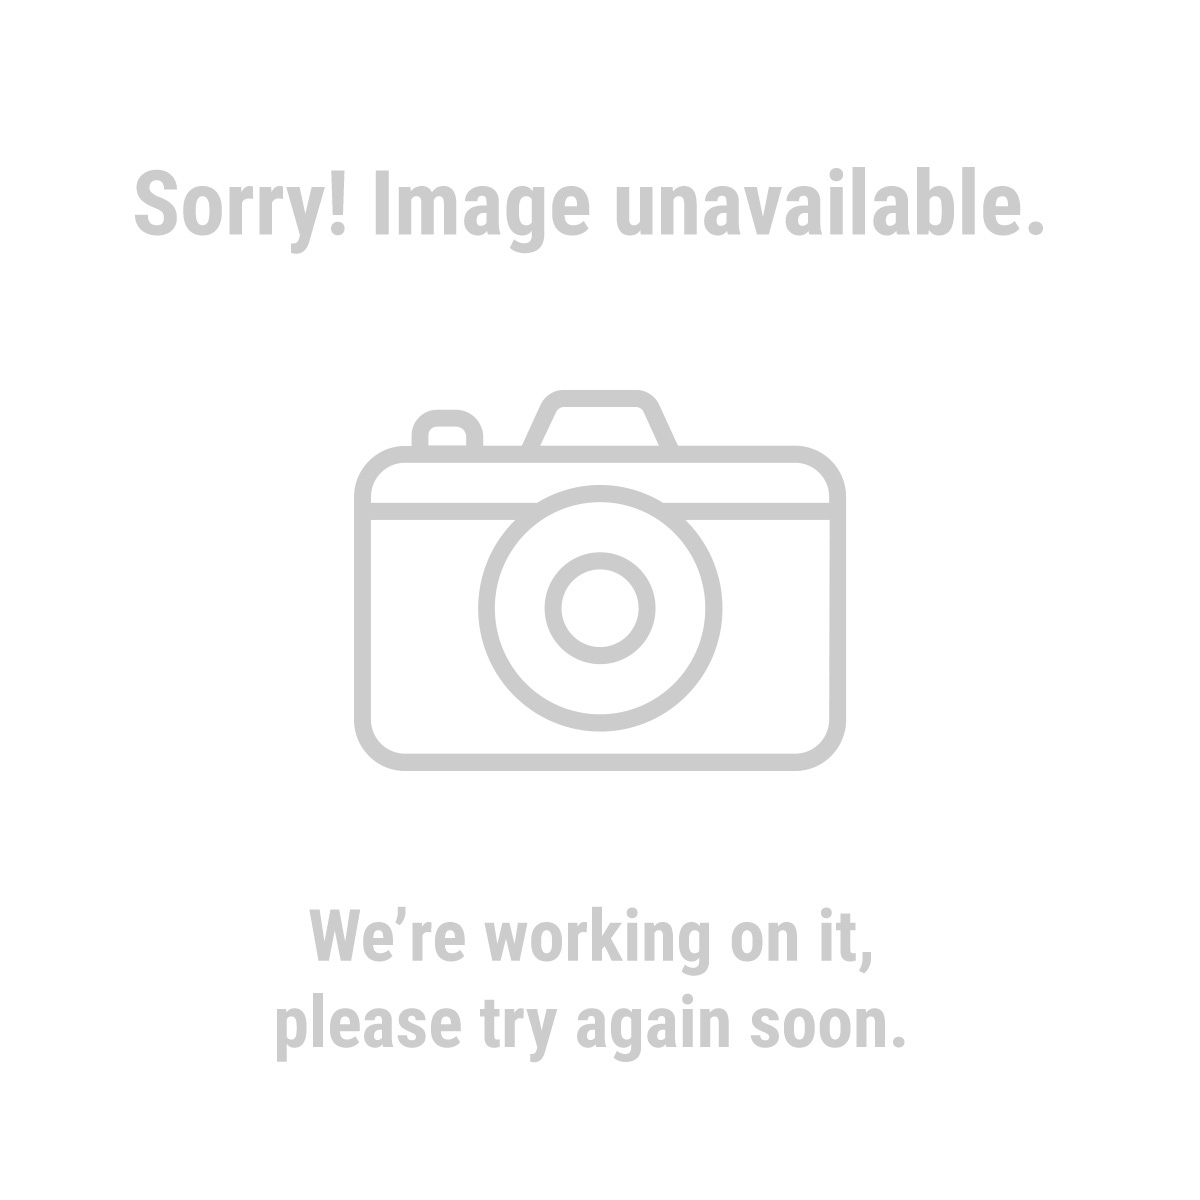 Benchtop router table with 1 34 hp router 60 in 4 drawer hardwood workbench greentooth Choice Image